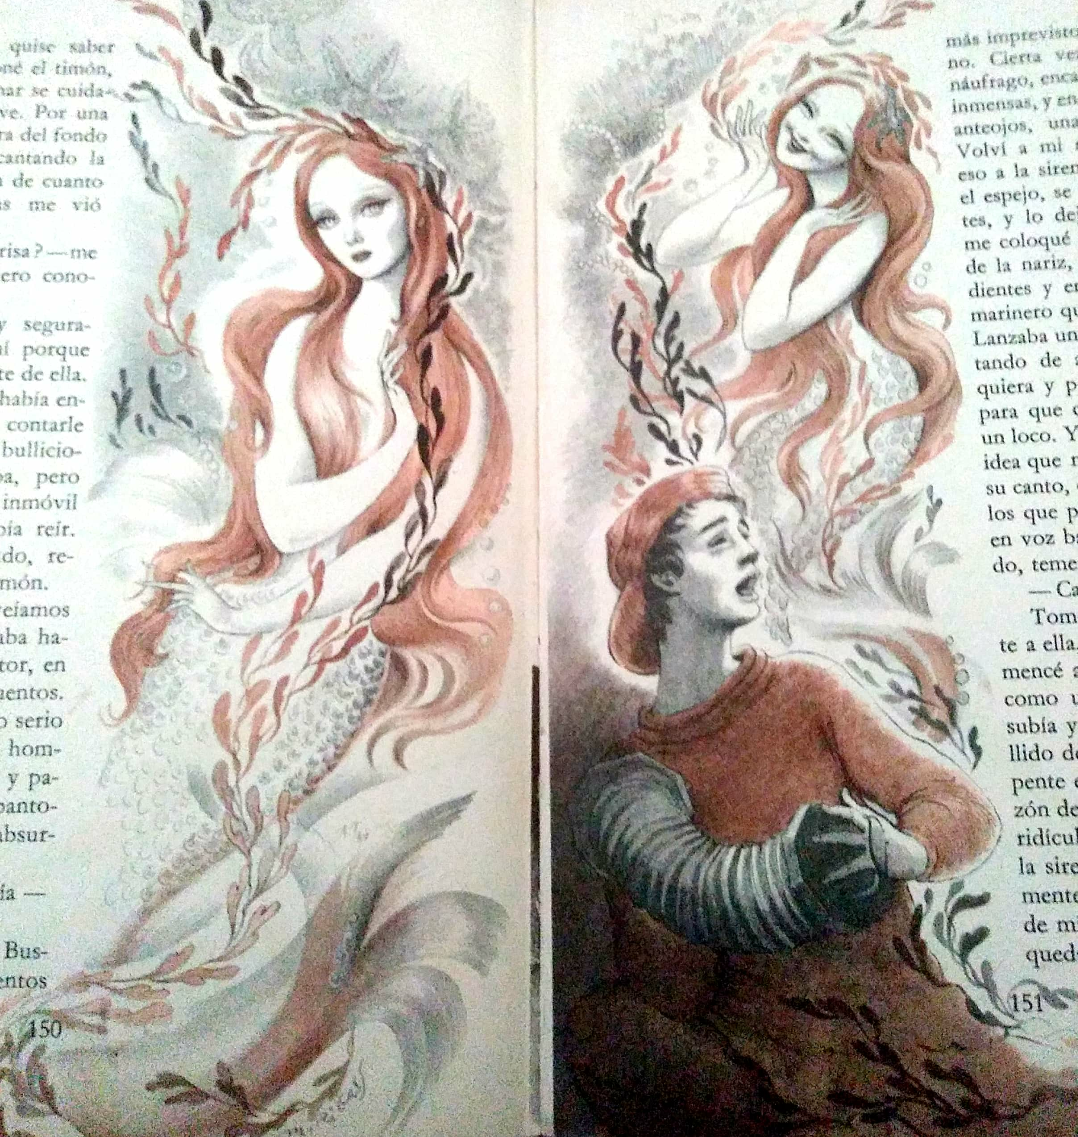 """Illustration of a mermaid and sailor from """"The Green sailor"""" by Hernán del Solar"""